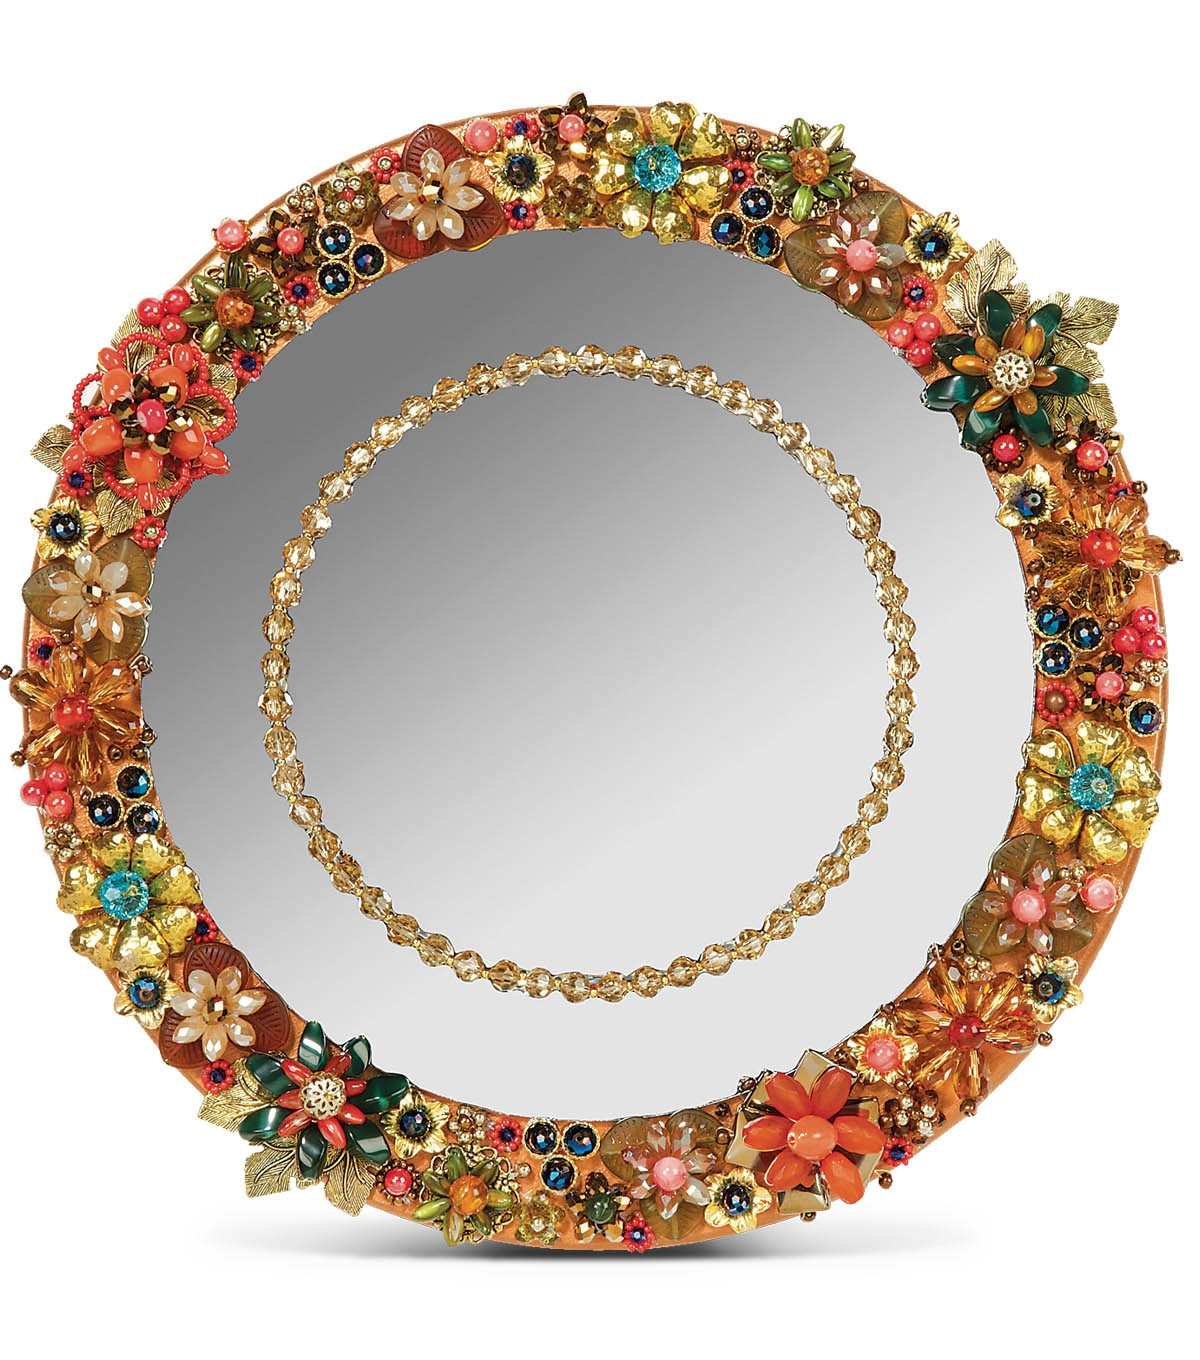 Large Vintage Embellished Deco Jewelry Wall Mirror Rhinestone Pertaining To Embellished Mirrors (View 6 of 15)